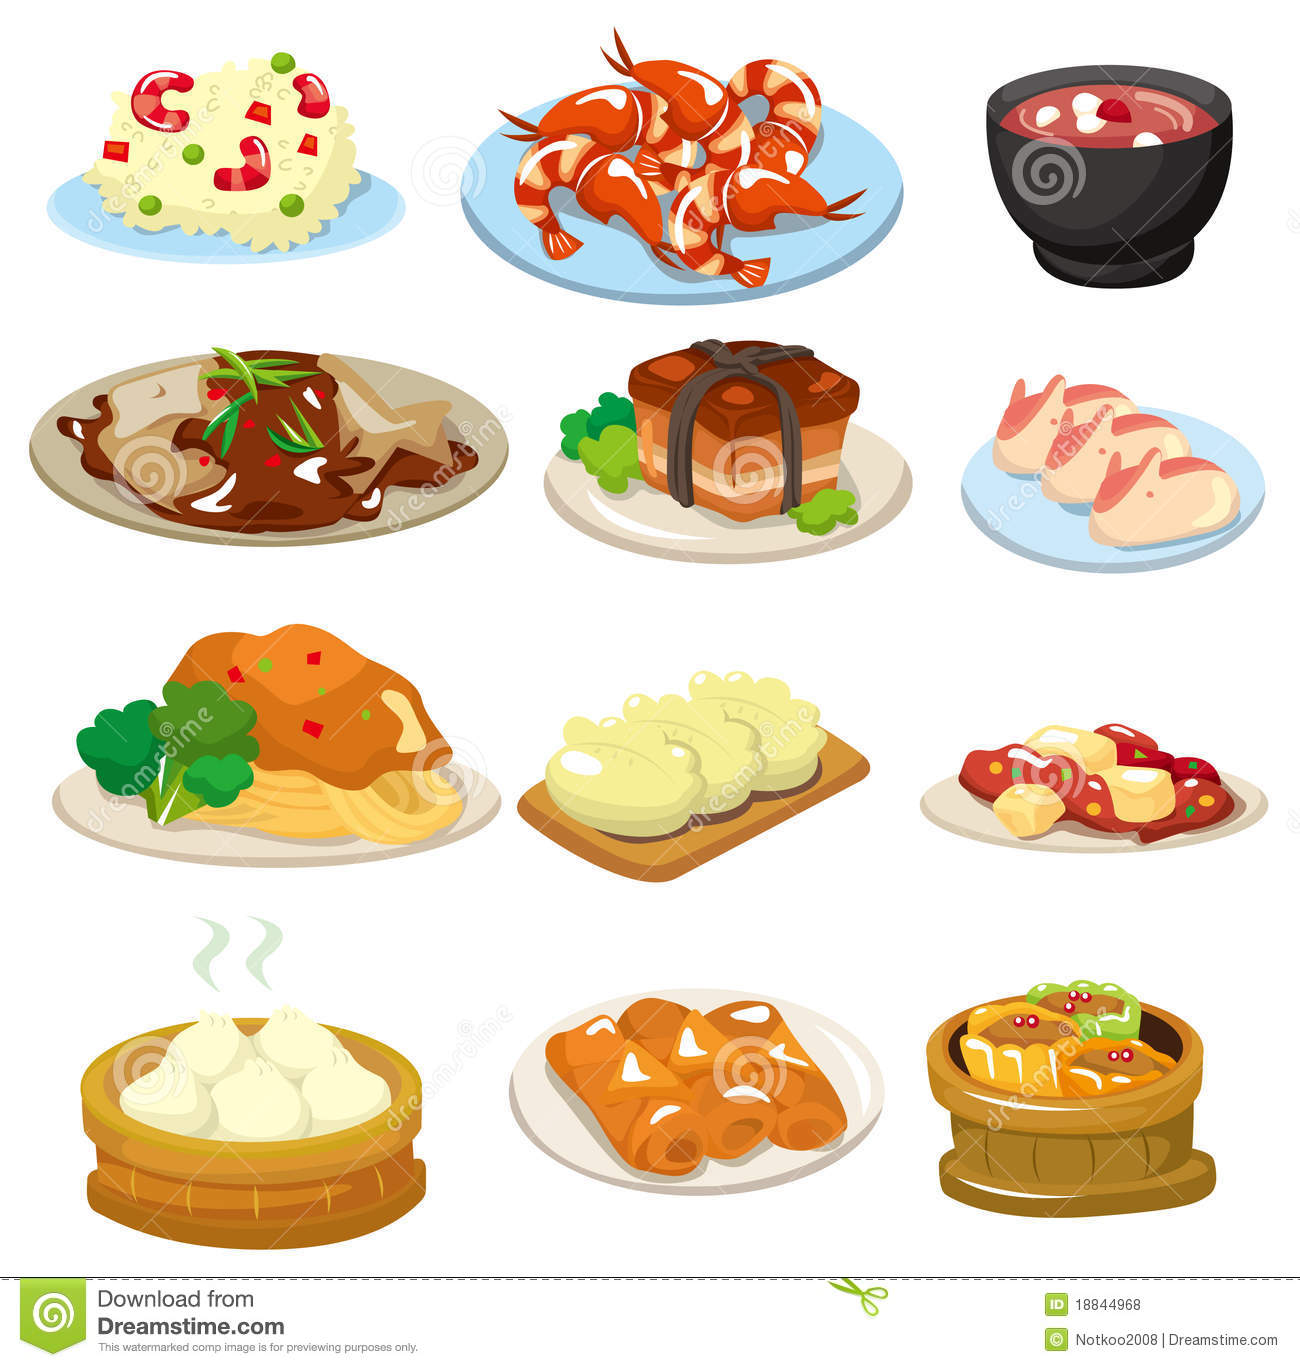 Cuisine story daily . China clipart food chinese